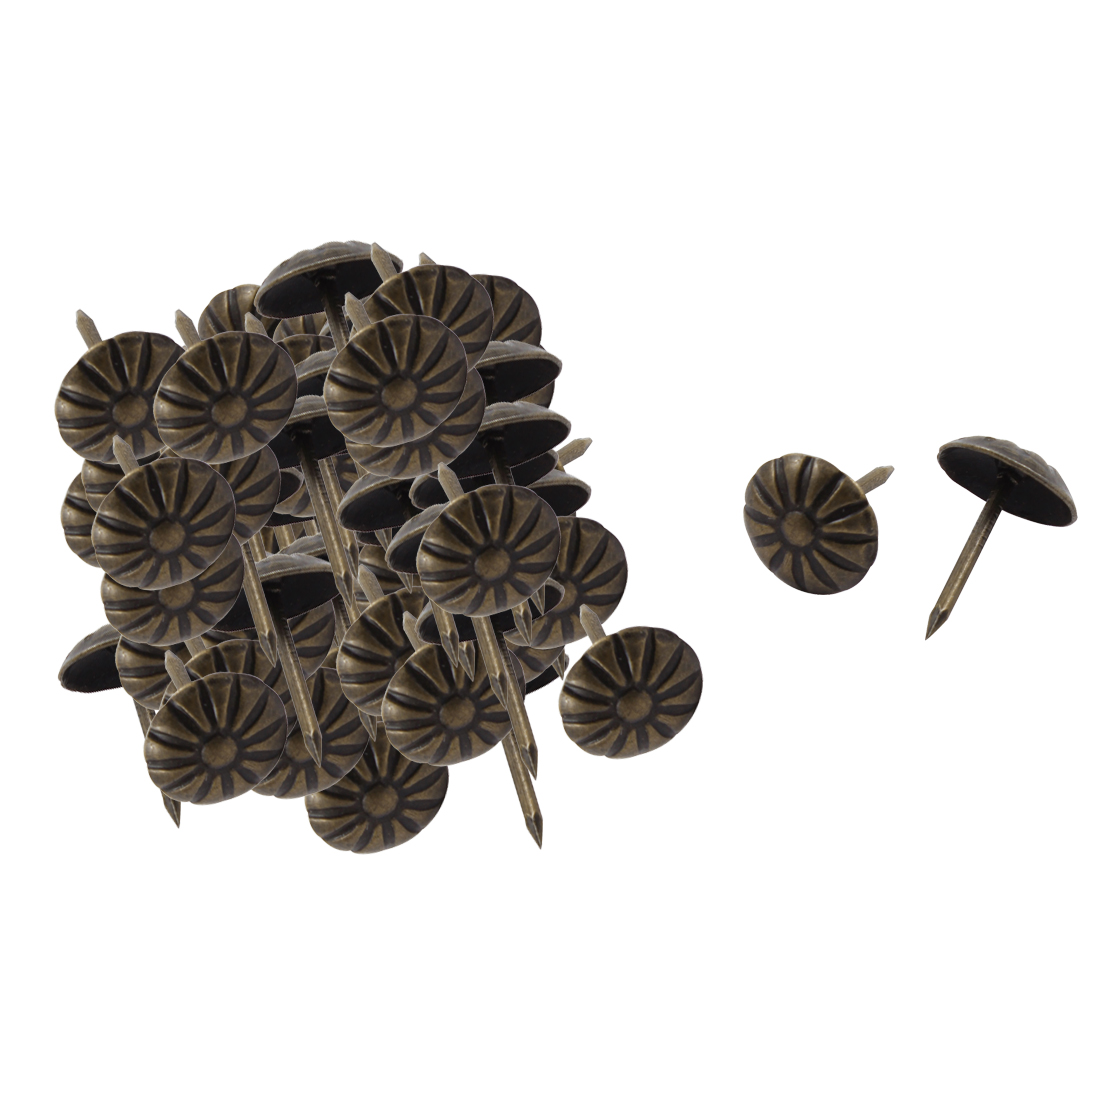 Furniture Chrysanthemum Pattern Upholstery Tack Nail Bronze Tone 11 x 16mm 80pcs